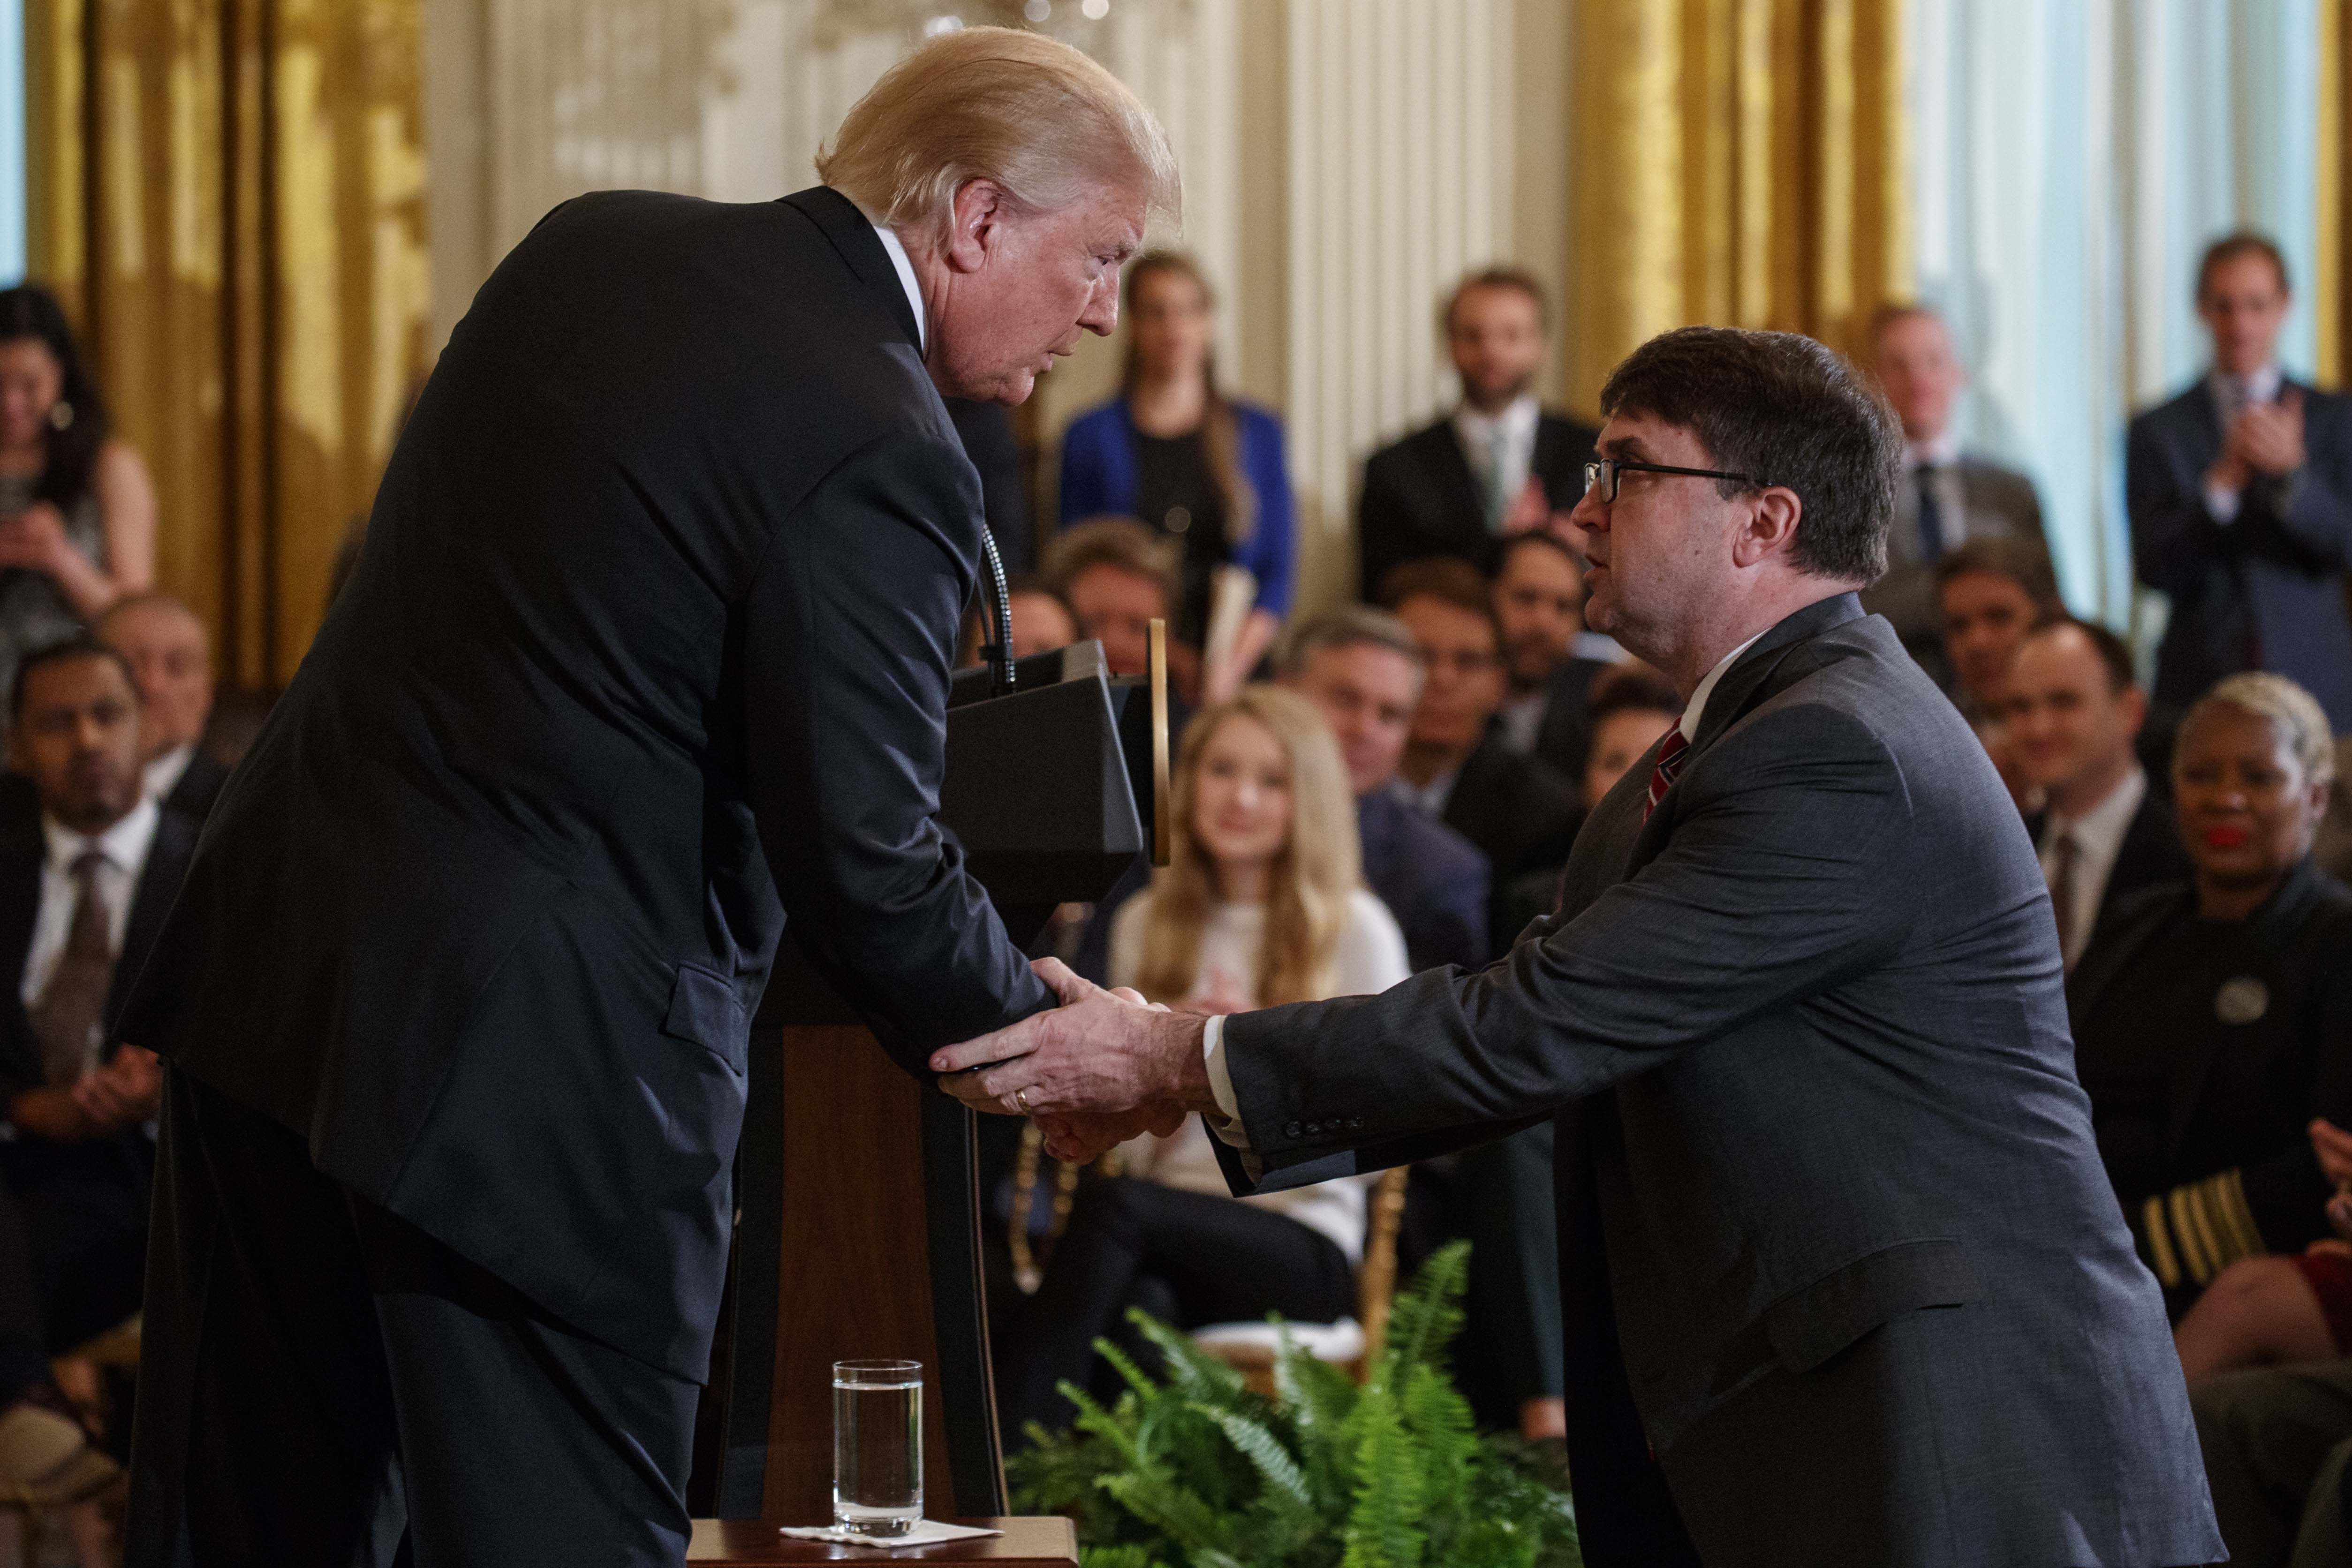 Caption: President Donald Trump shakes hands with acting Department of Veterans Affairs Secretary Robert Wilkie after announcing he will nominate him to lead the department during an event on prison reform in the East Room of the White House, Friday, May 18, 2018., Credit: Evan Vucci / AP